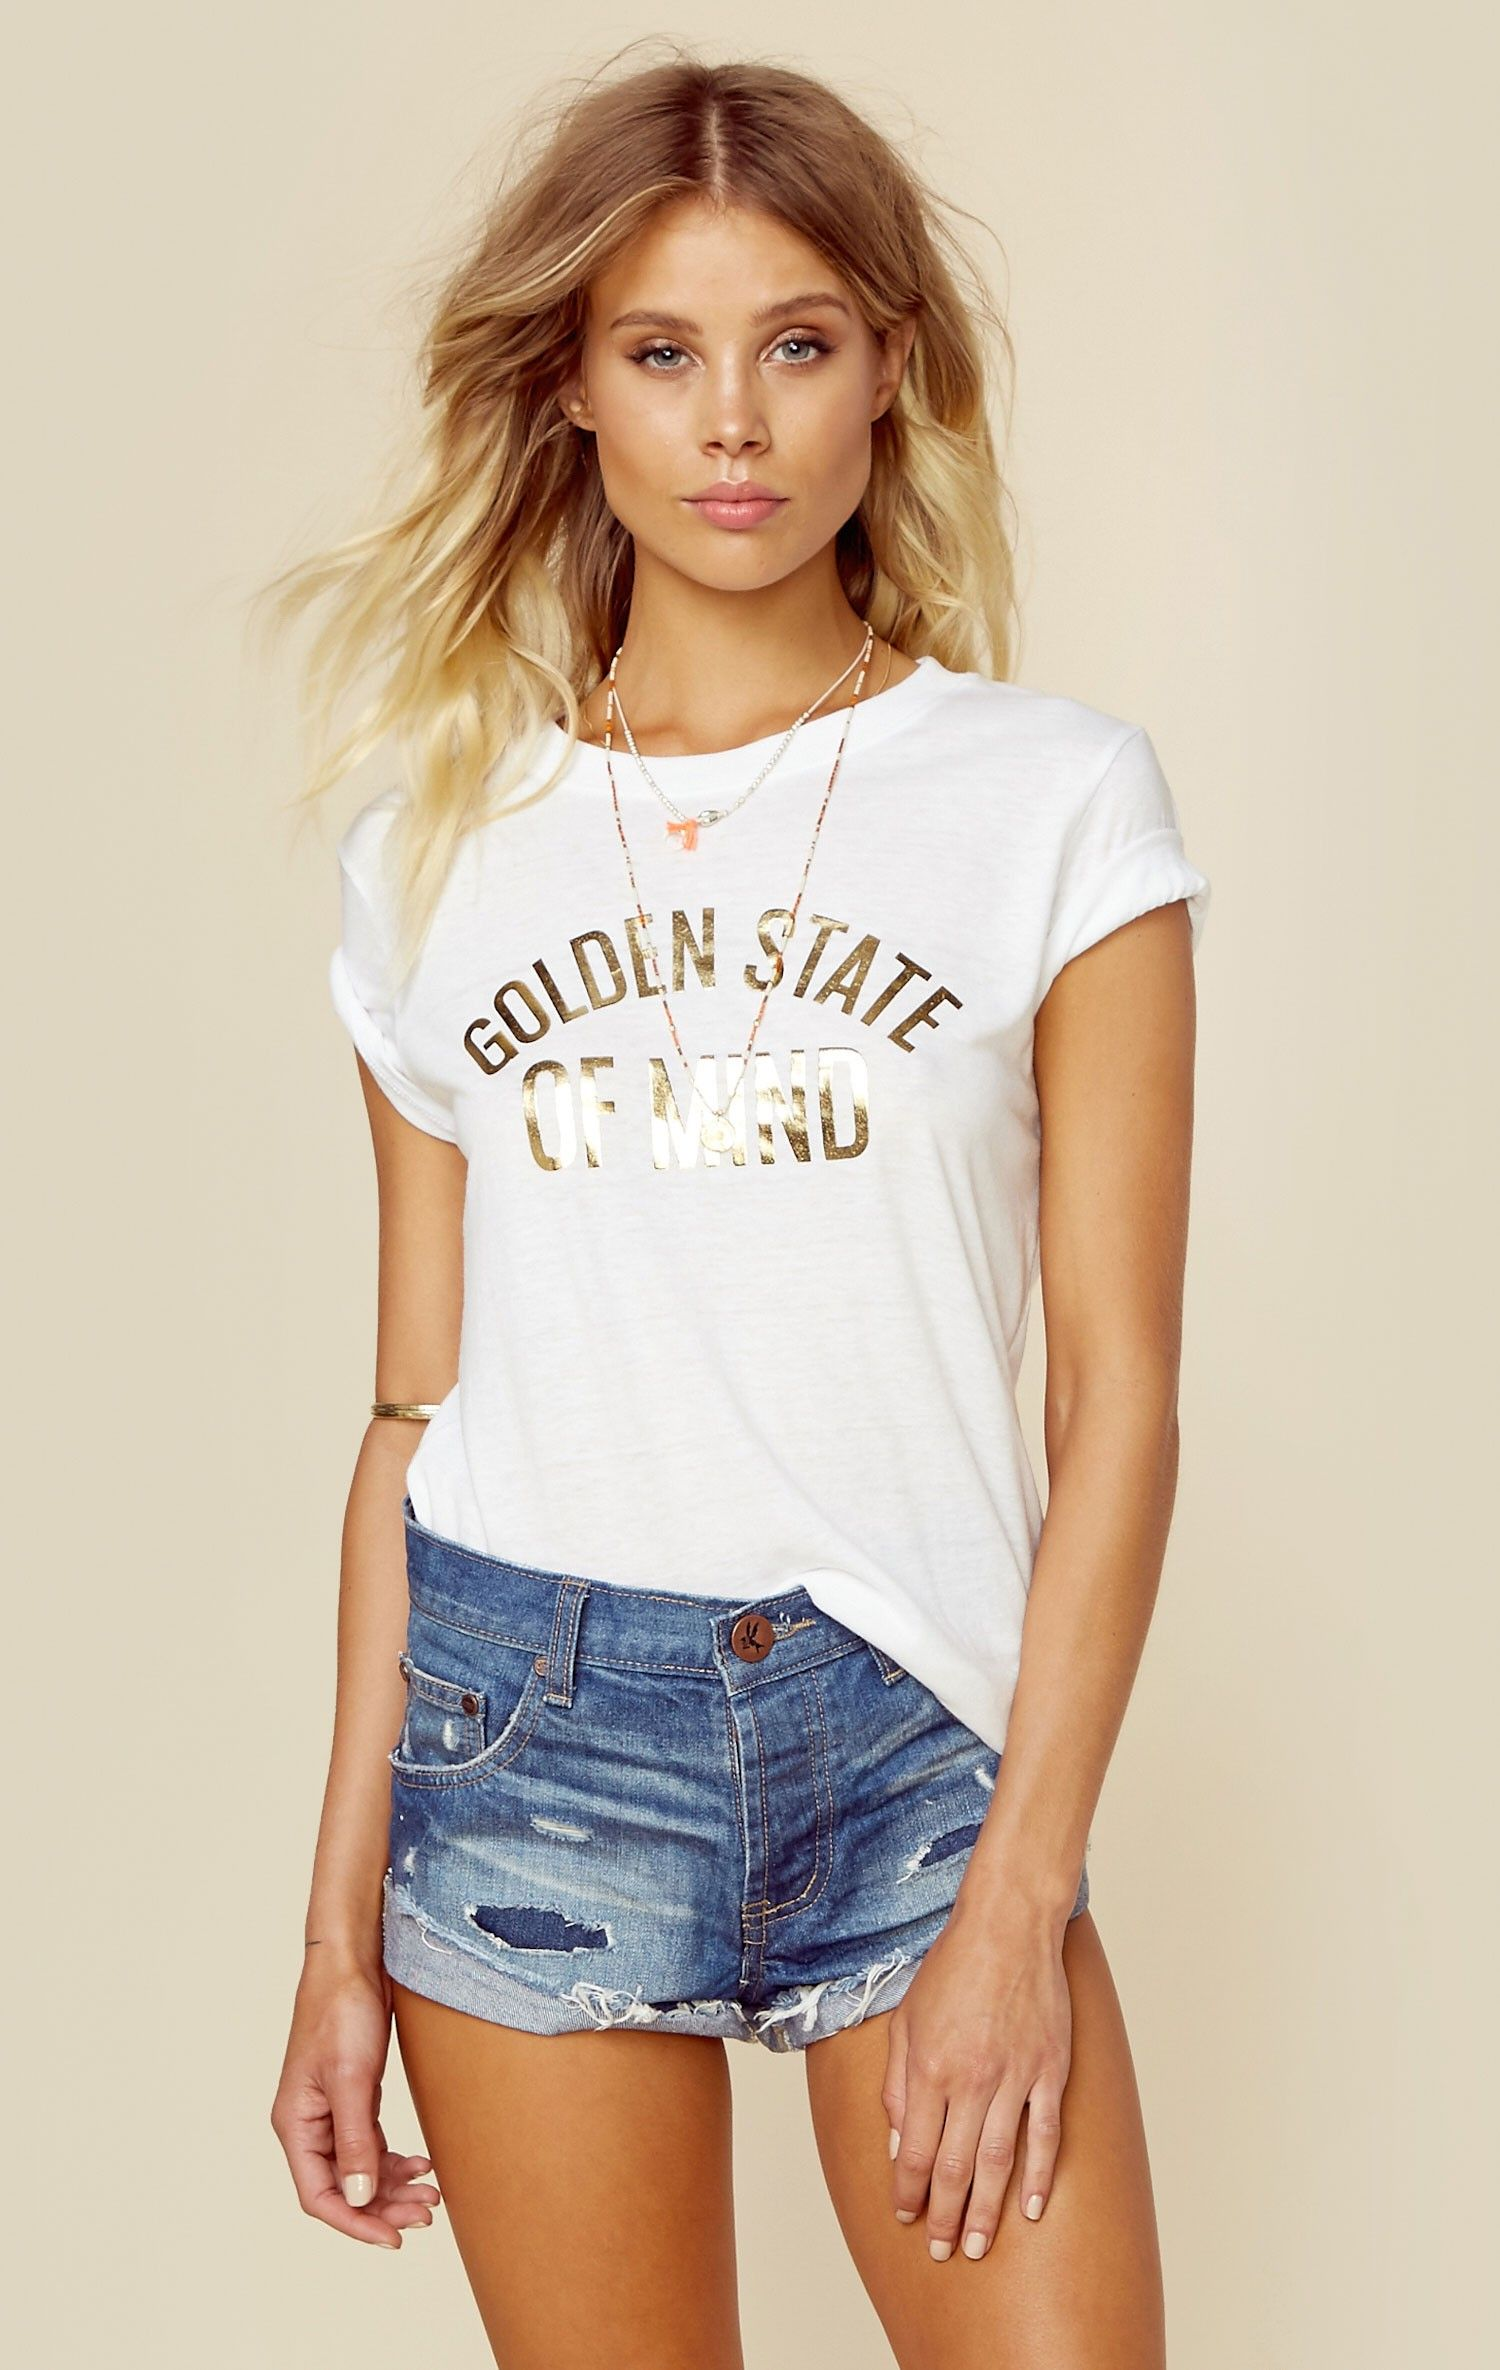 9a10ce38fcc3 Golden state of mind loose tee